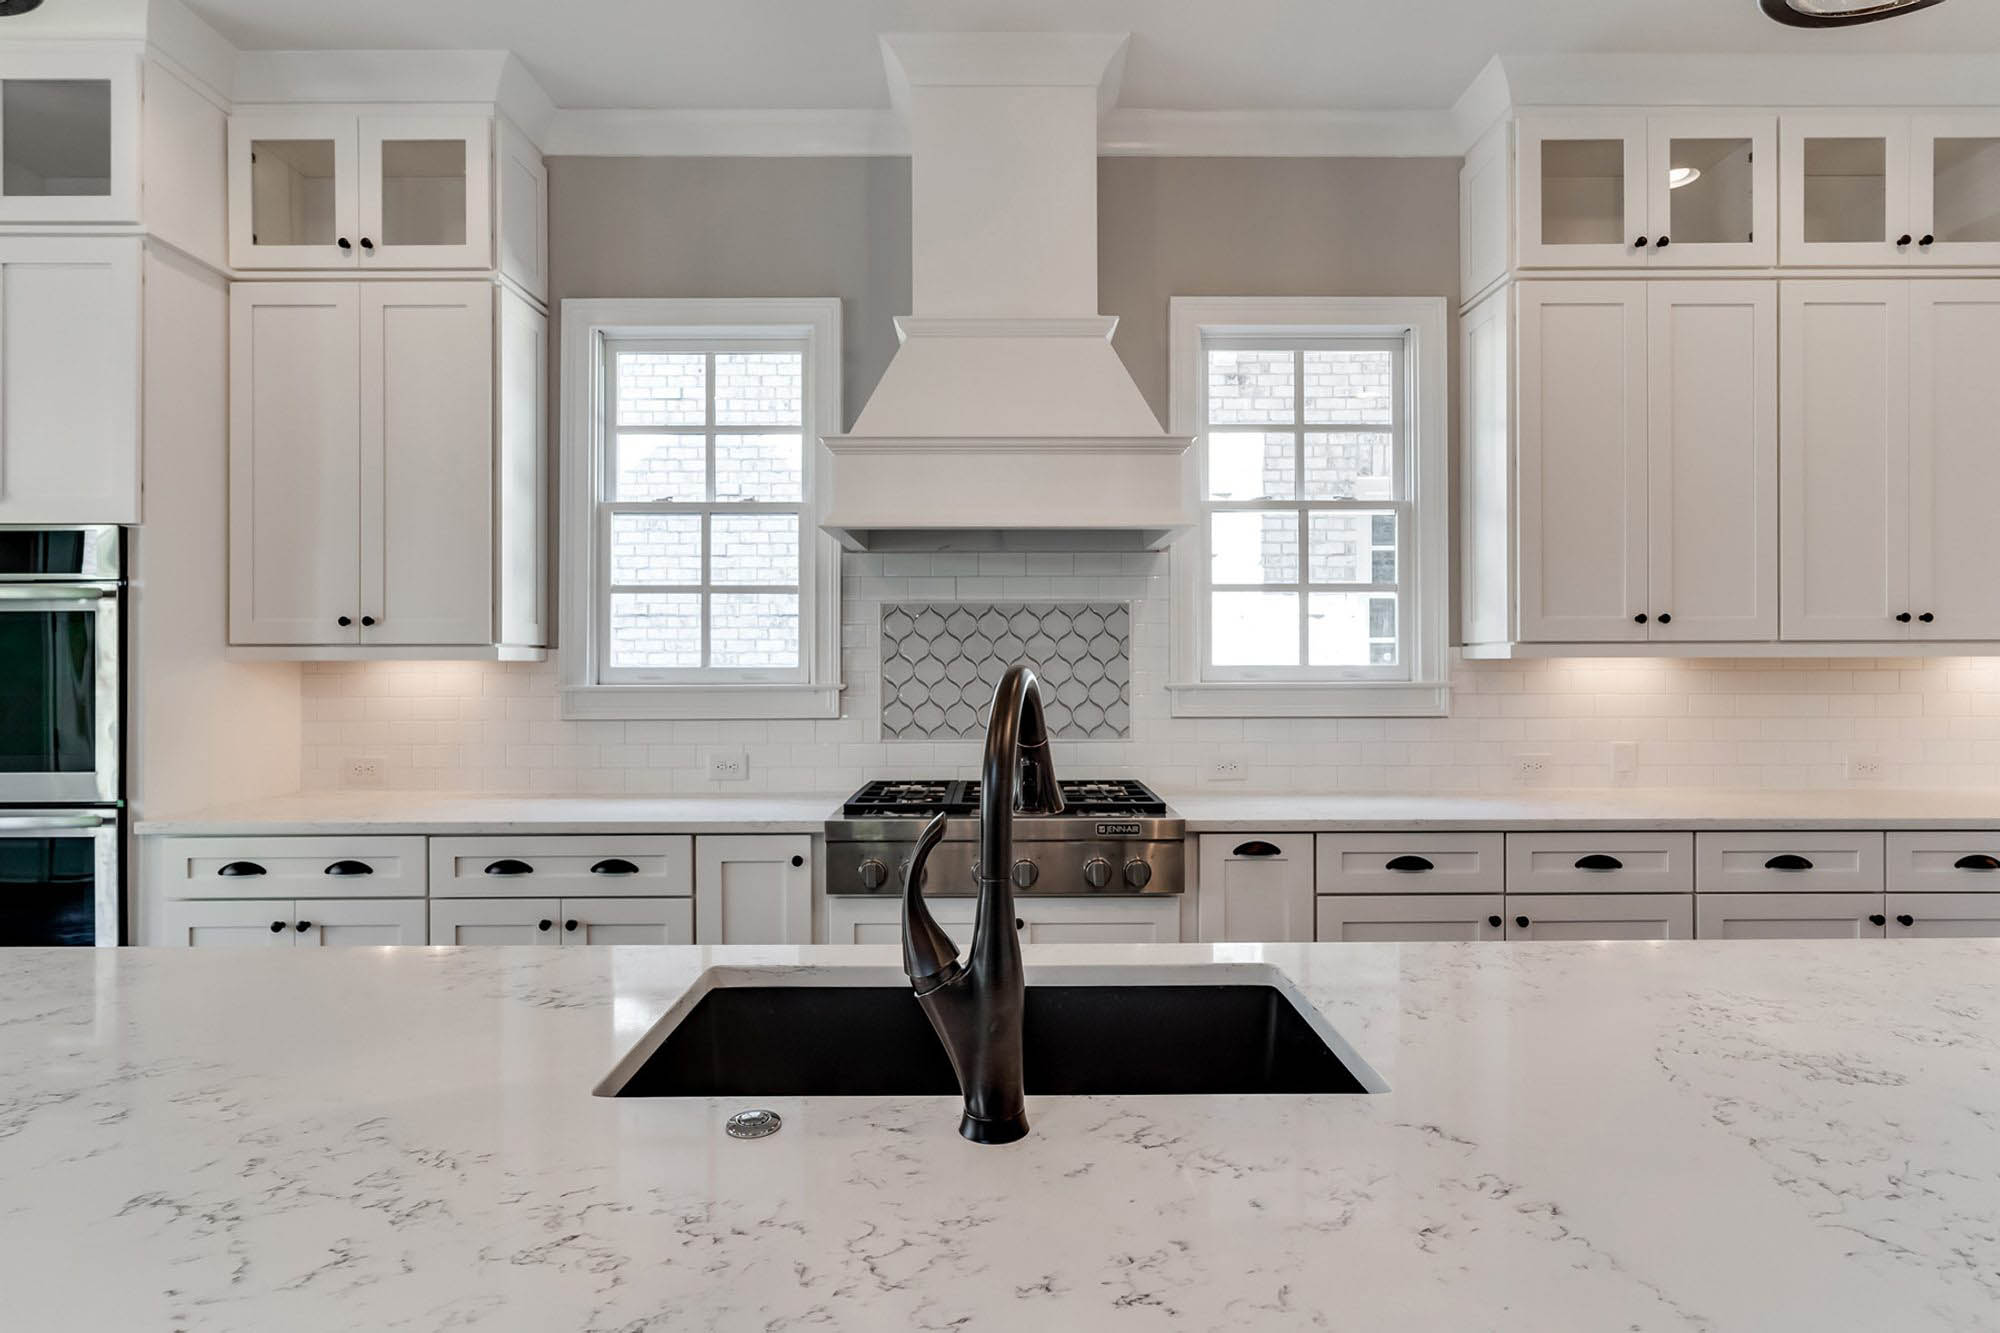 White marble quartz countertop with white cabinets and backsplash. Bronze faucet and sink.